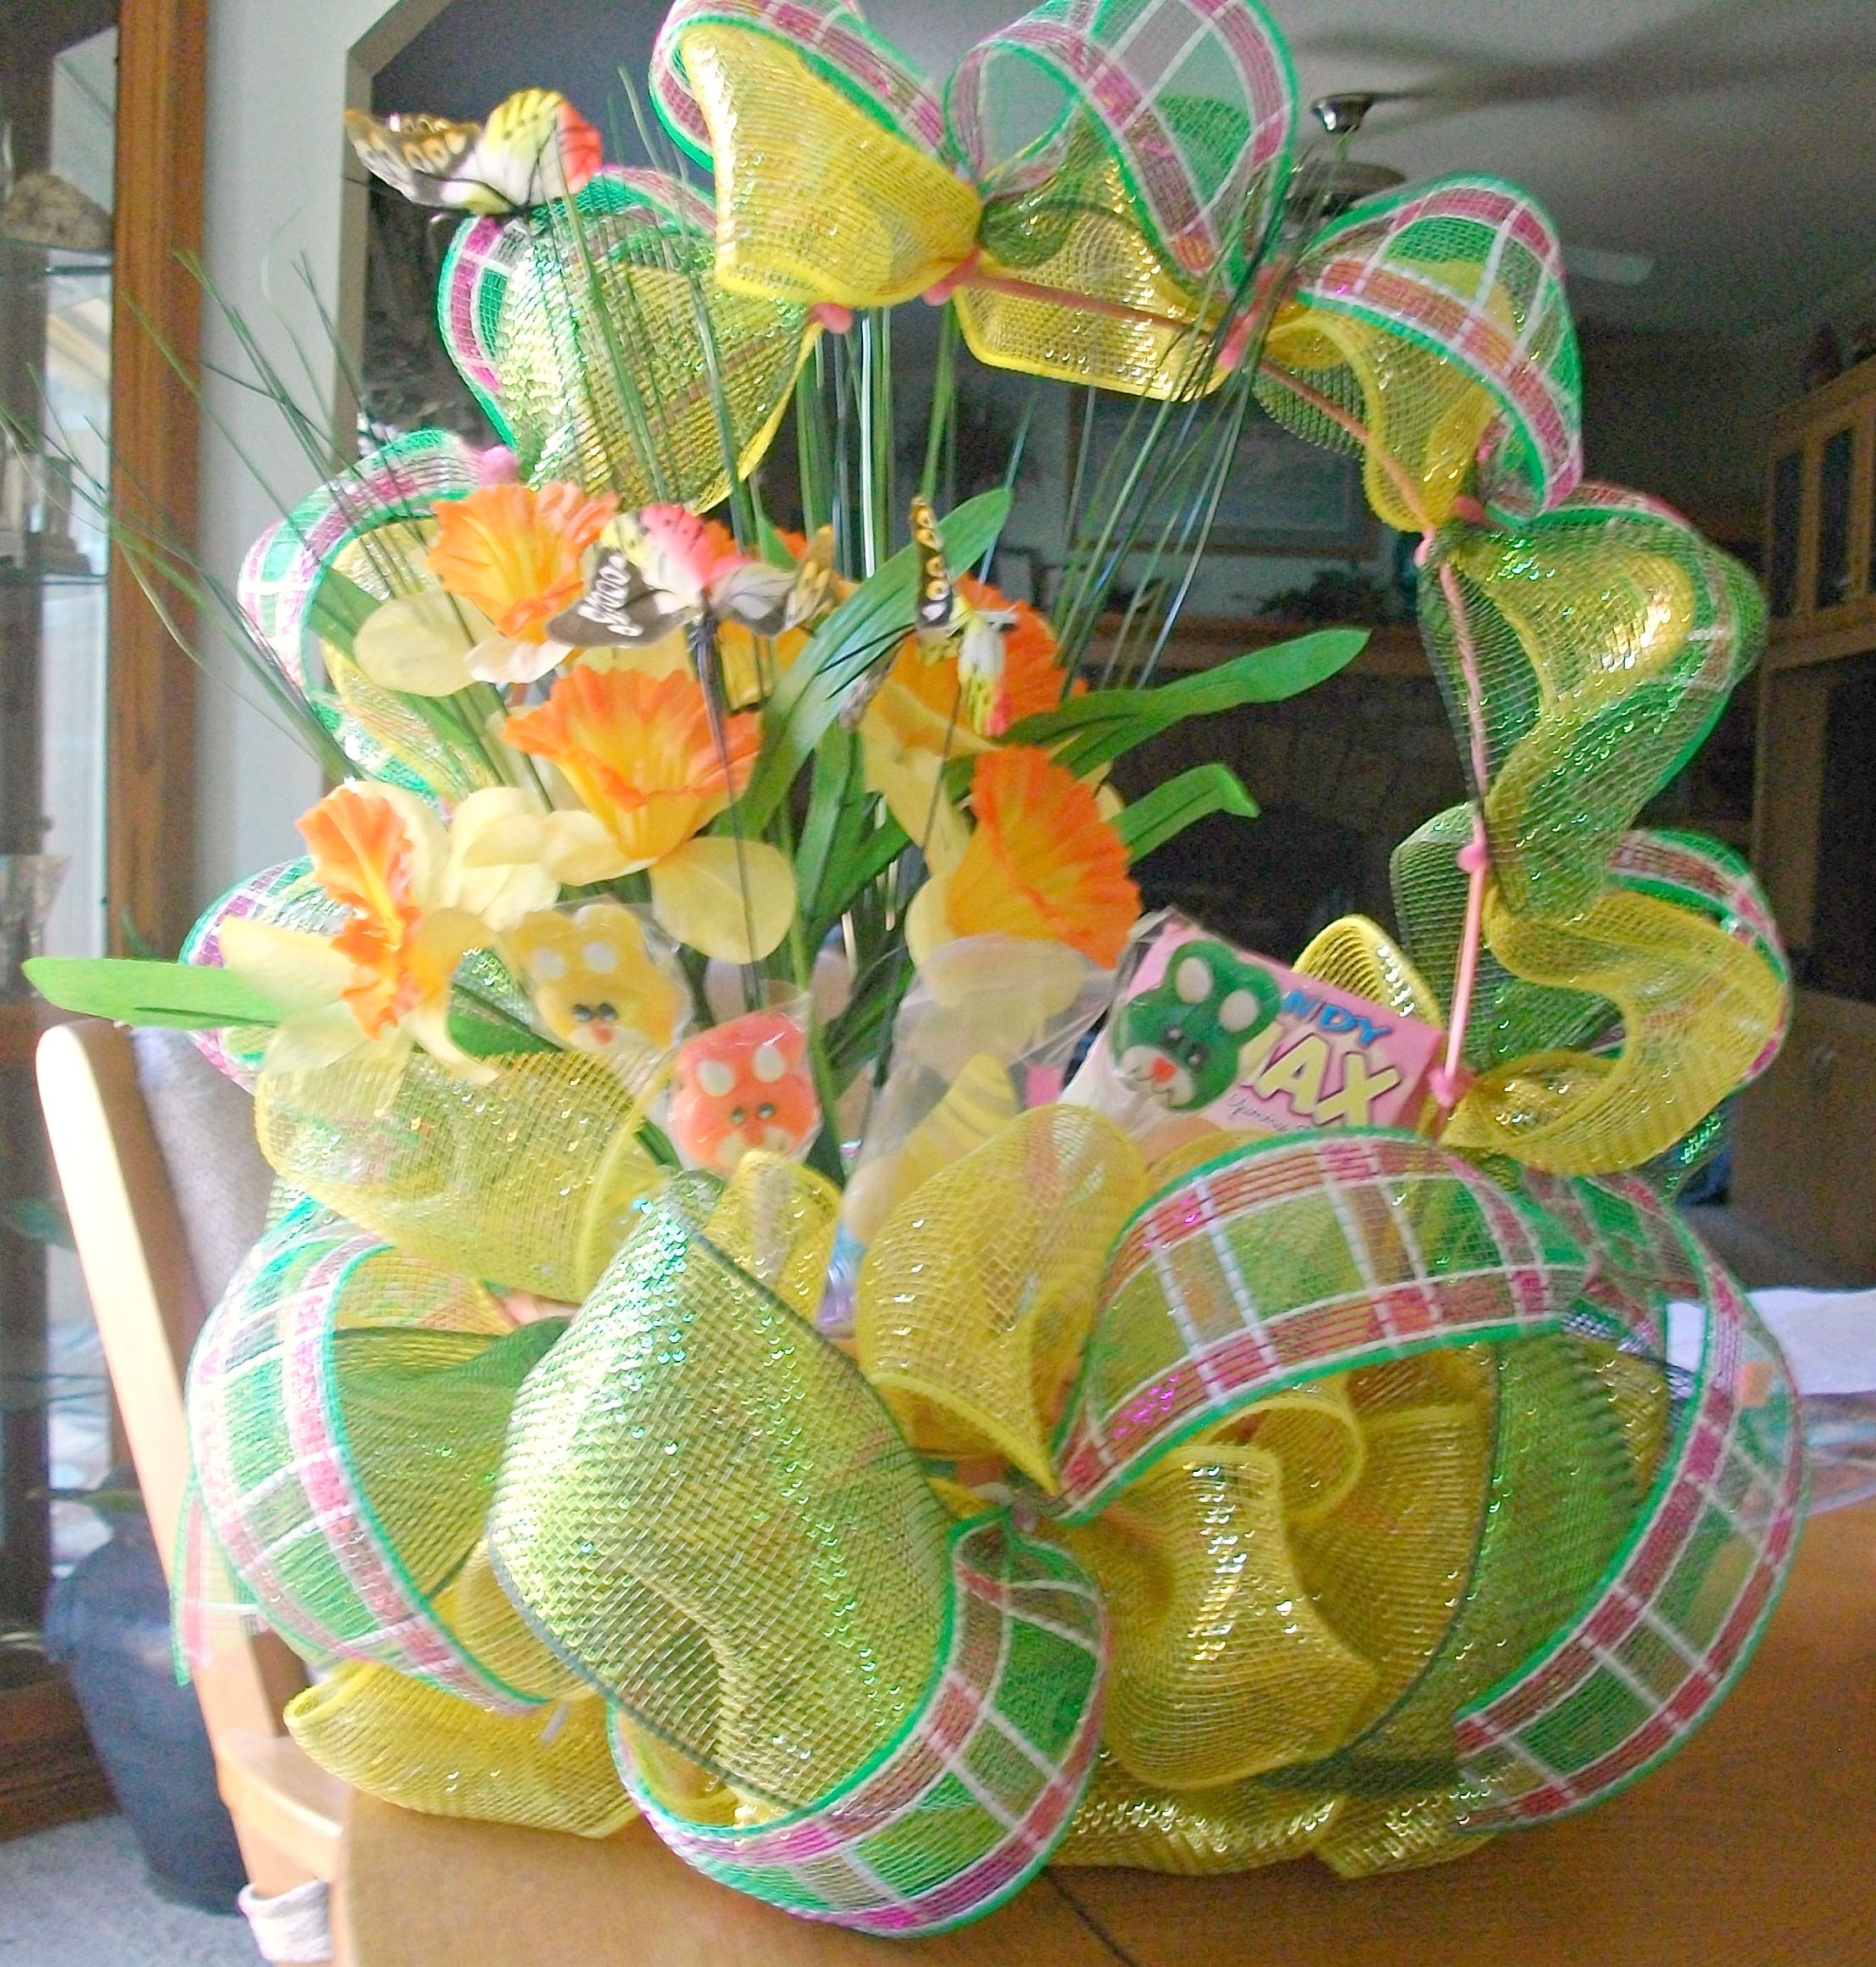 Decomesh easter basket using a basket from the dollar tree decomesh easter basket using a basket from the dollar tree negle Choice Image